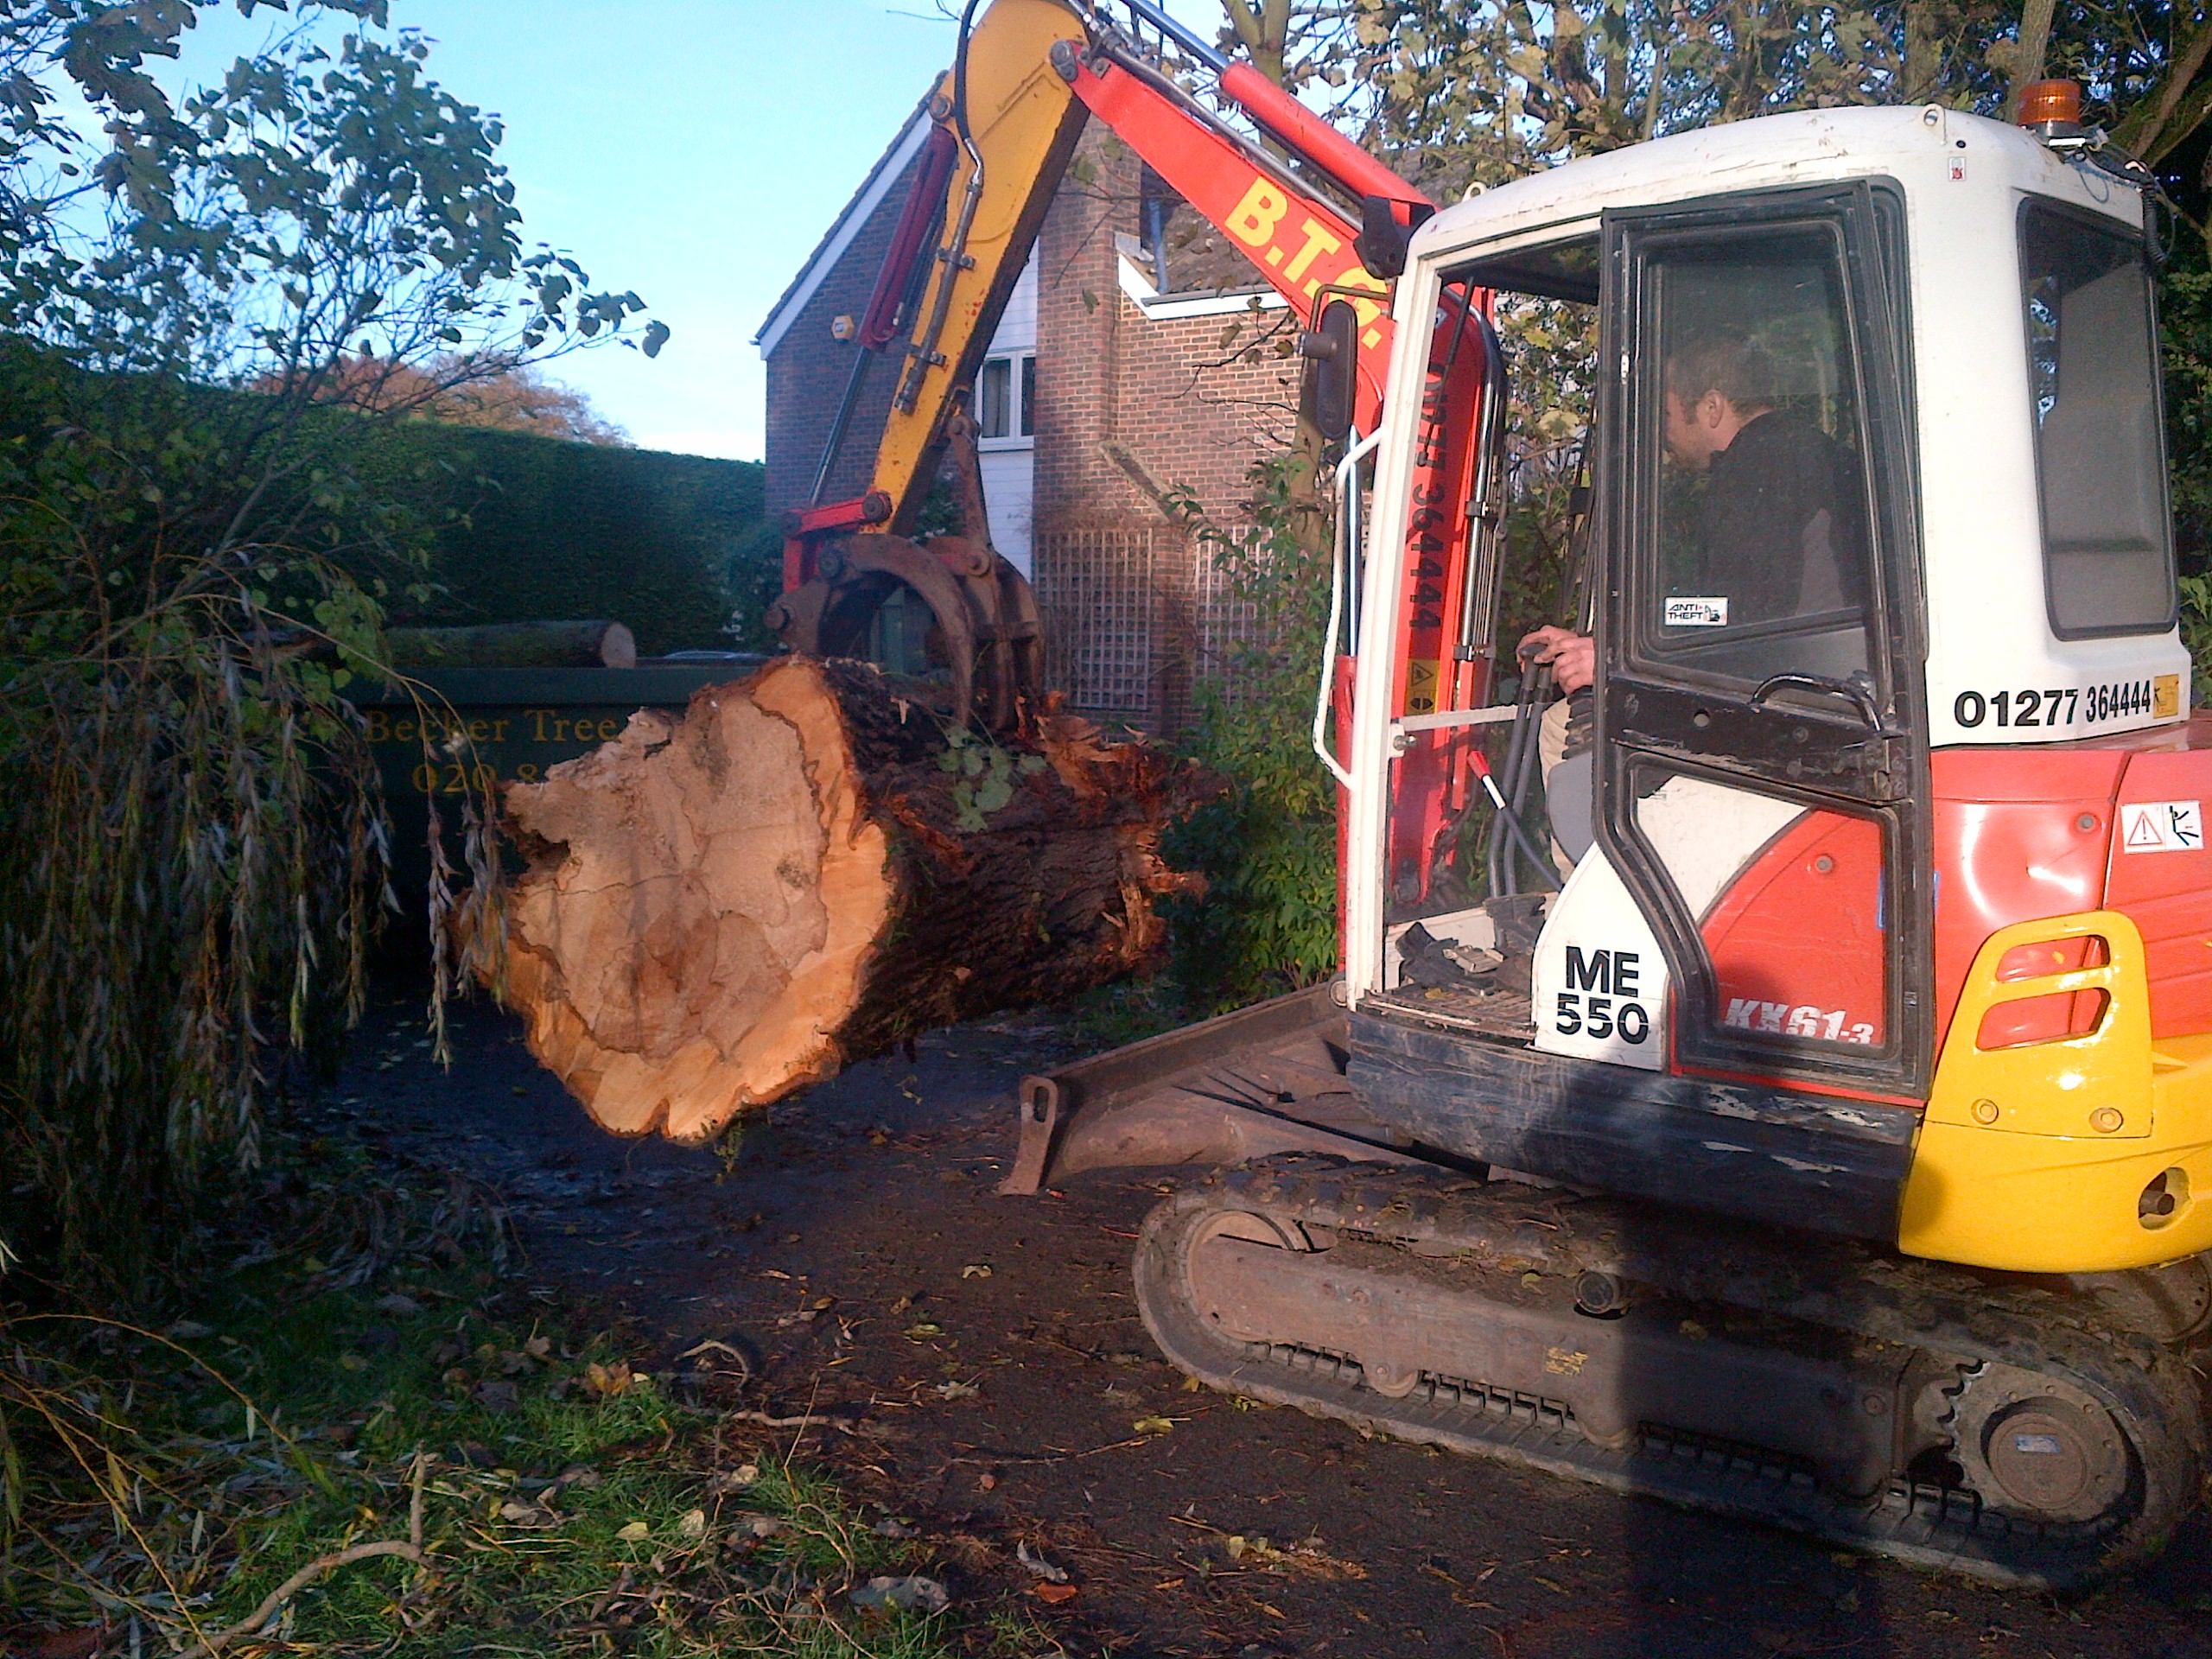 Tree services Essex, Tree services Essex, Tree surgeons Essex